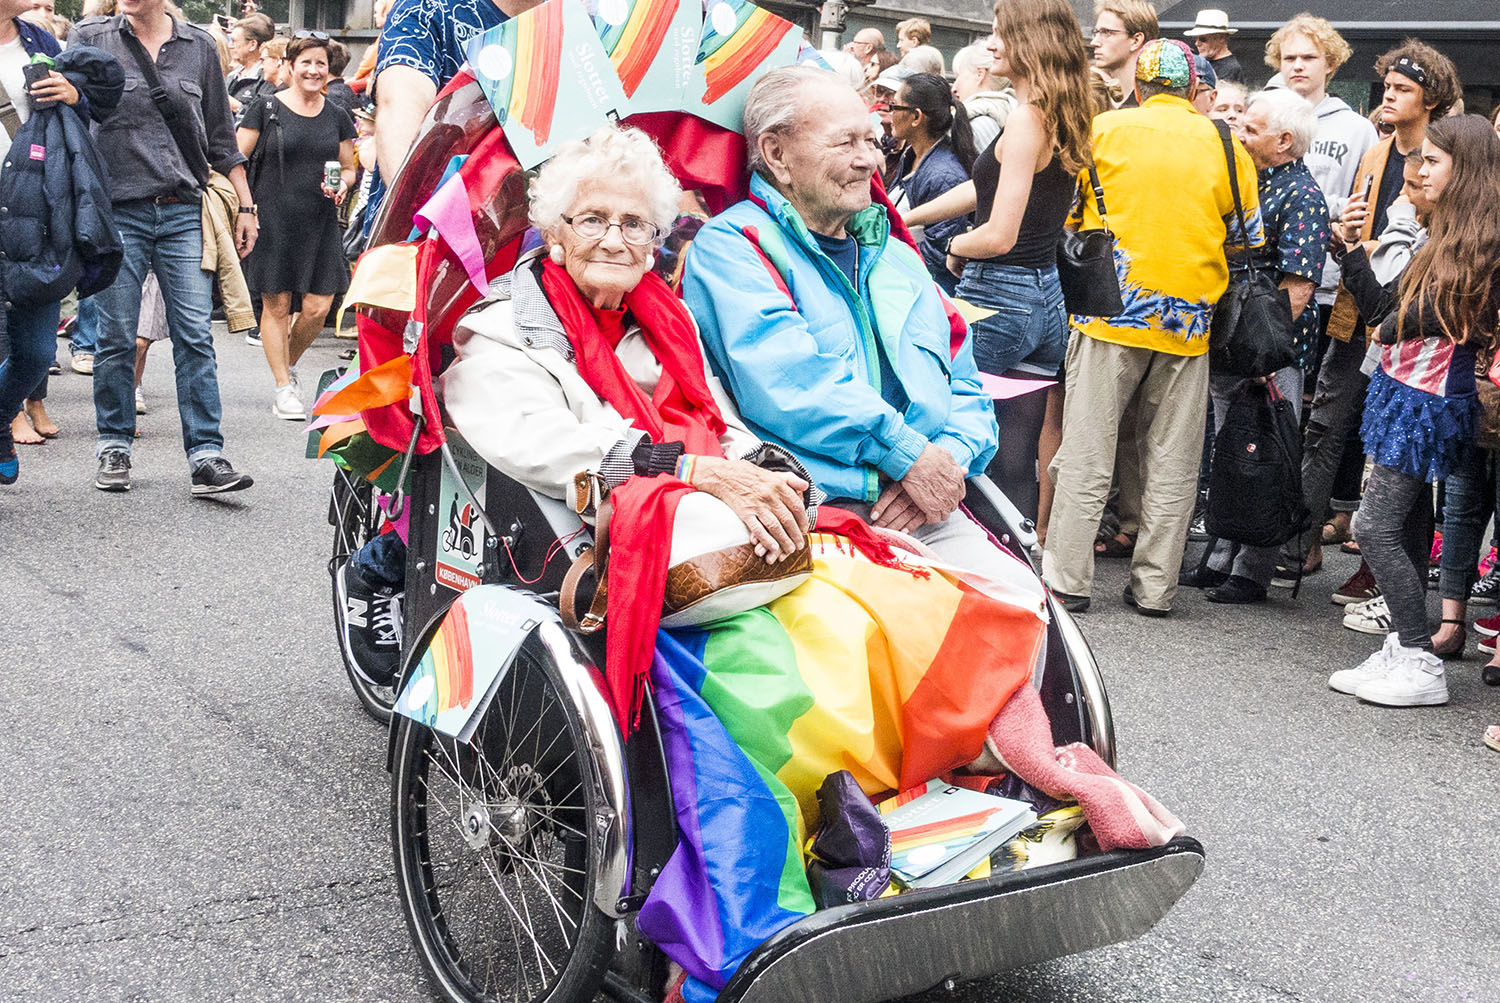 CphPride2016_HelenaLundquist_blog_11